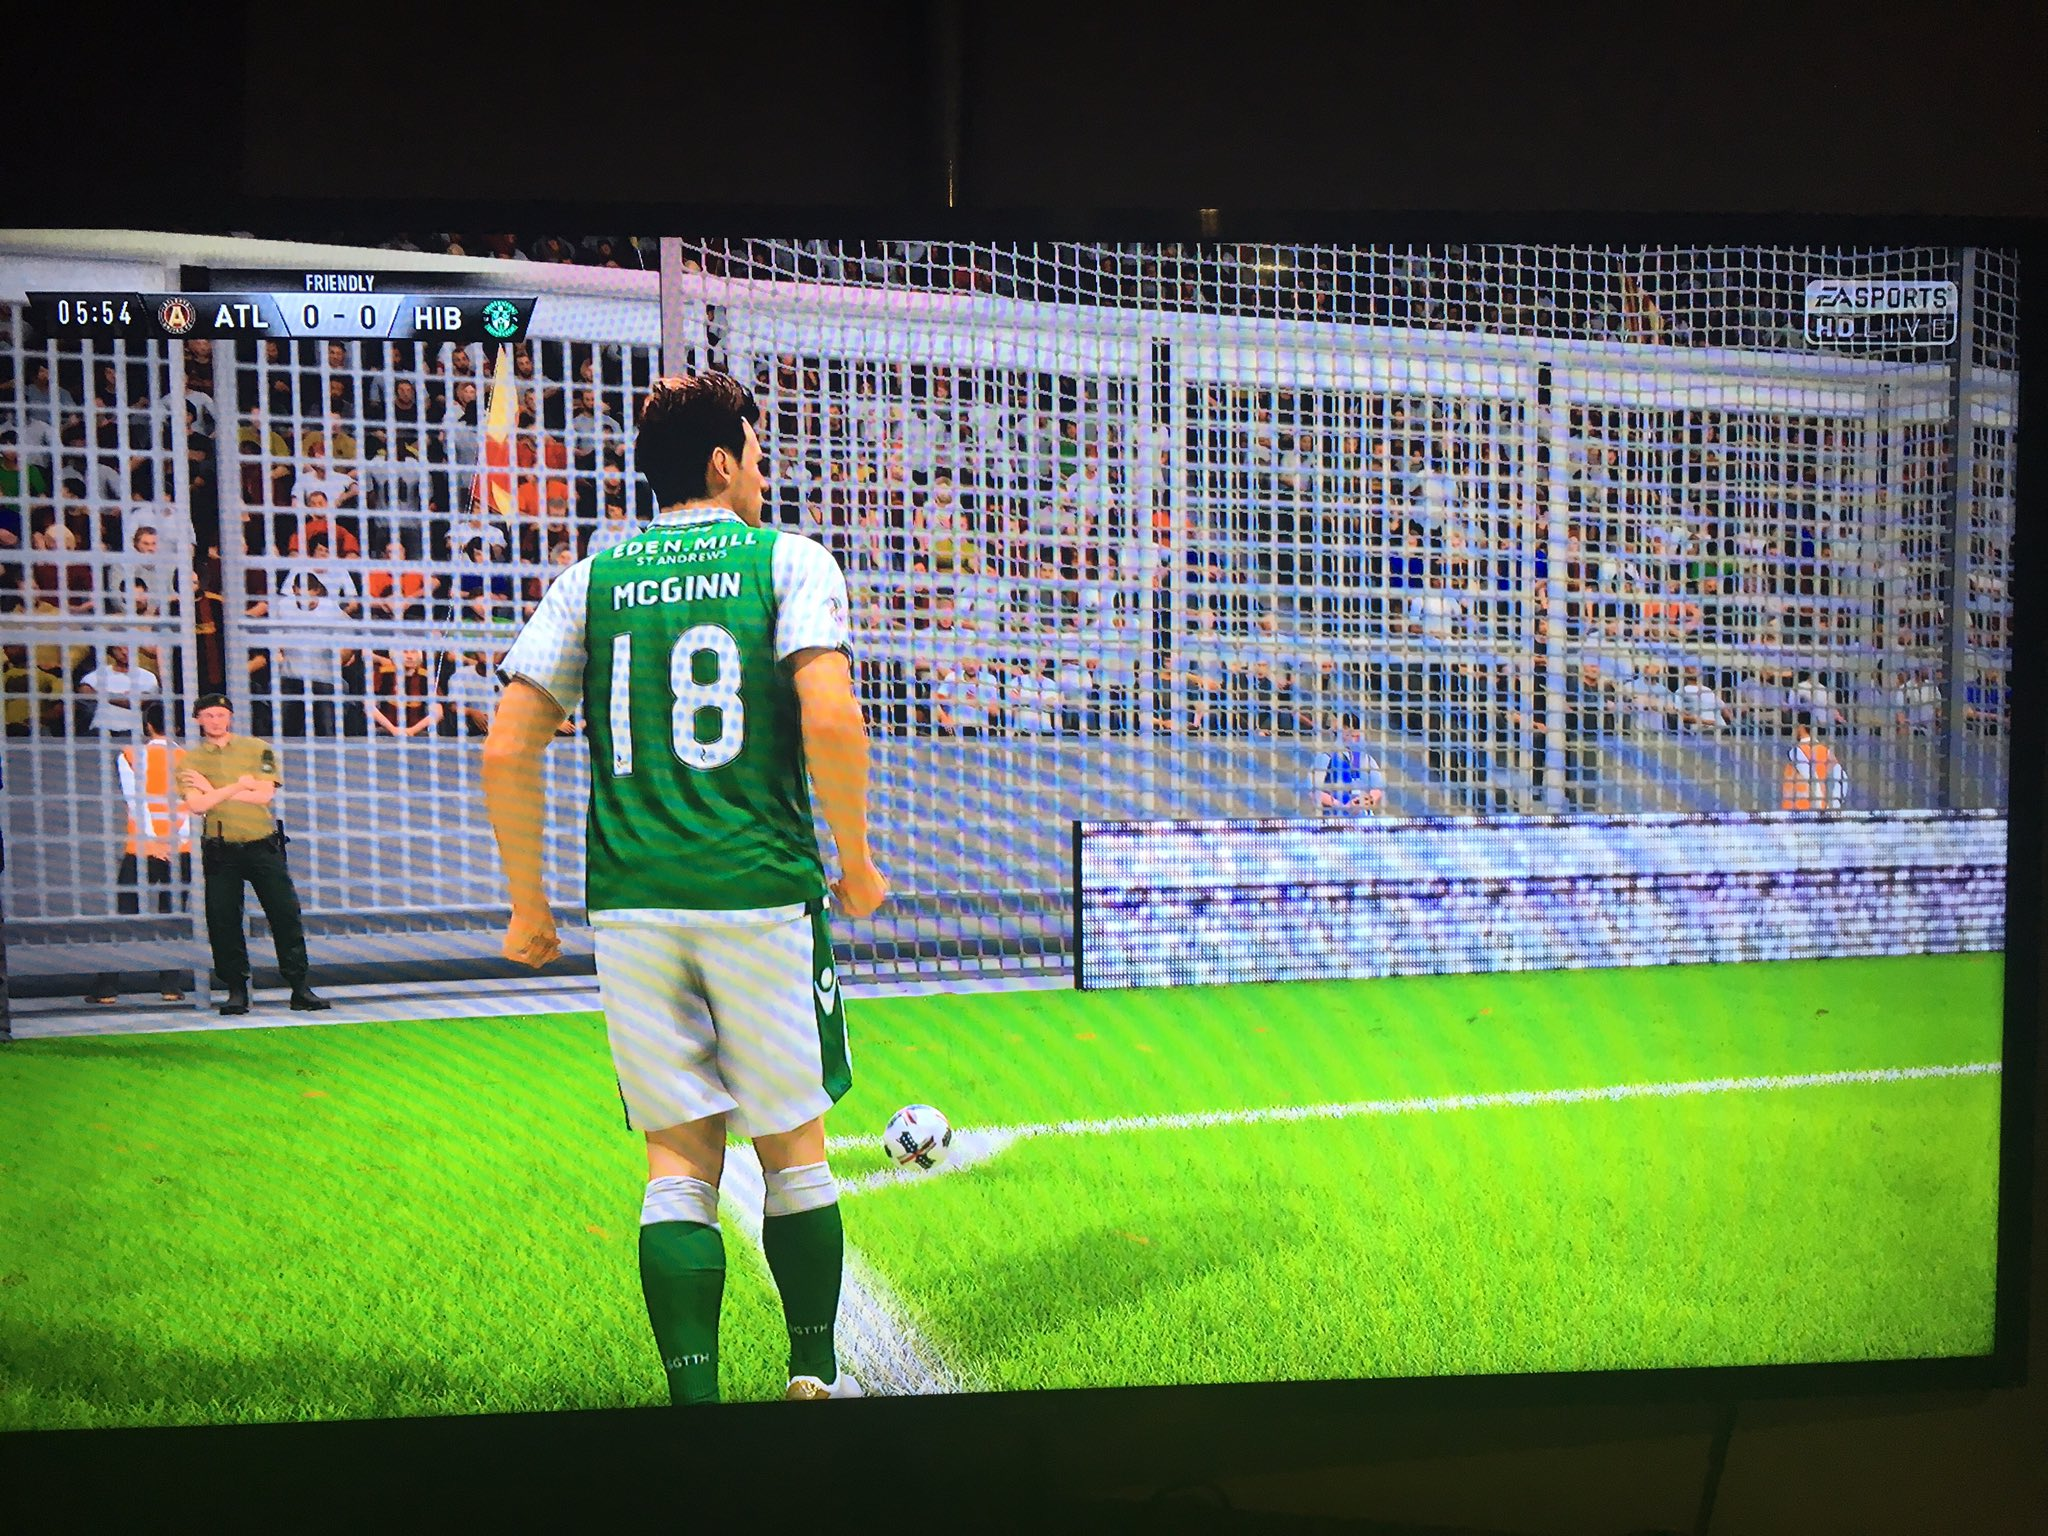 RT @EdenMill: Amazing to see our Hibs shirt sponsorship on #FIFA18!! ⚽️ @EASPORTS @EASPORTSFIFA @HibsOfficial https://t.co/ETVoVecTRU